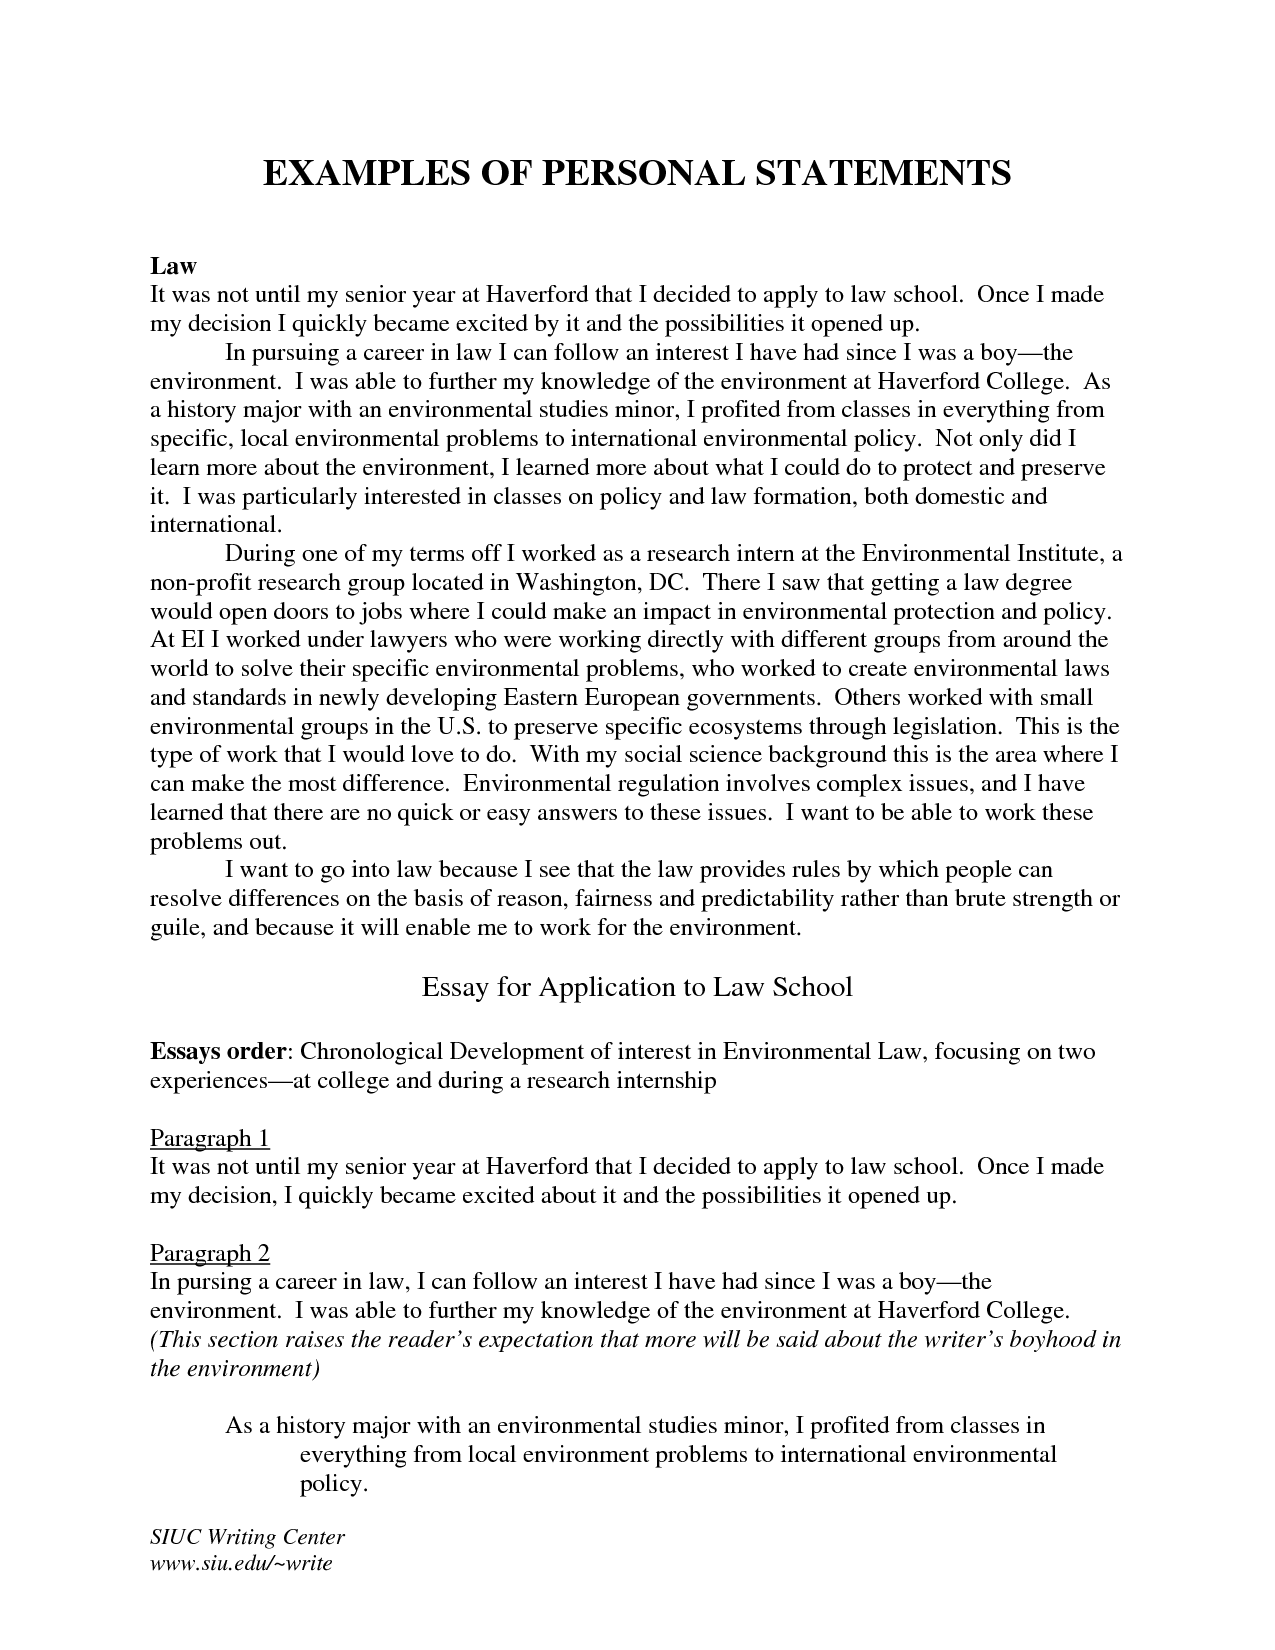 Sample High School Admission Essays  Essay On Health also Essay On Library In English Personal Statement High School  Personal Statement  Law  Literary Essay Thesis Examples